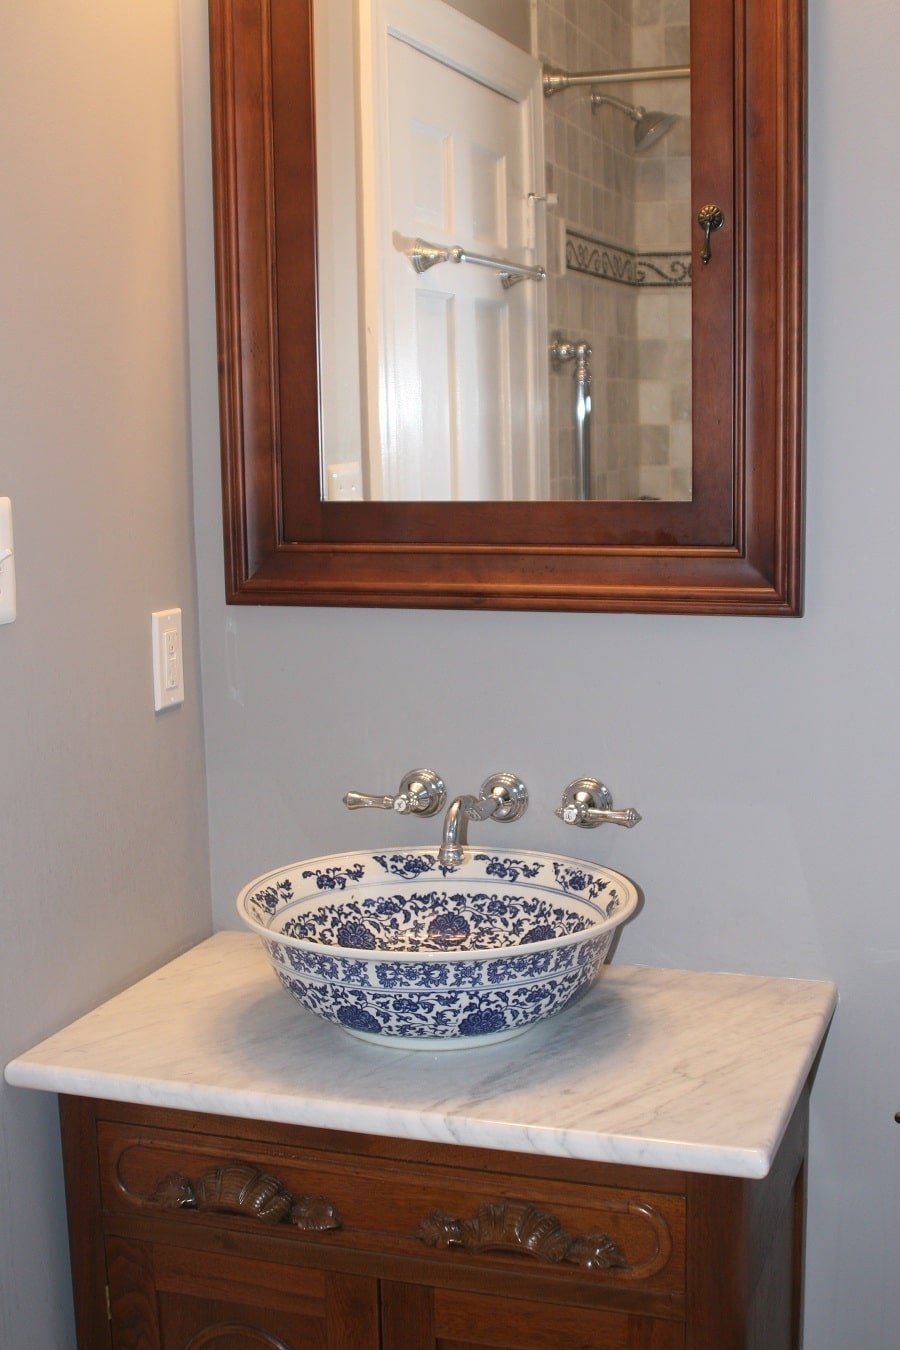 bathroom remodeling contractor maryland,colonial bathroom design,add bathroom,interior contractor baltimore,new bathroom shower contractor maryland,licensed bathroom contractors,add bathroom,Accessable senior bathroom,disabled veterans home,bathroom remodeling